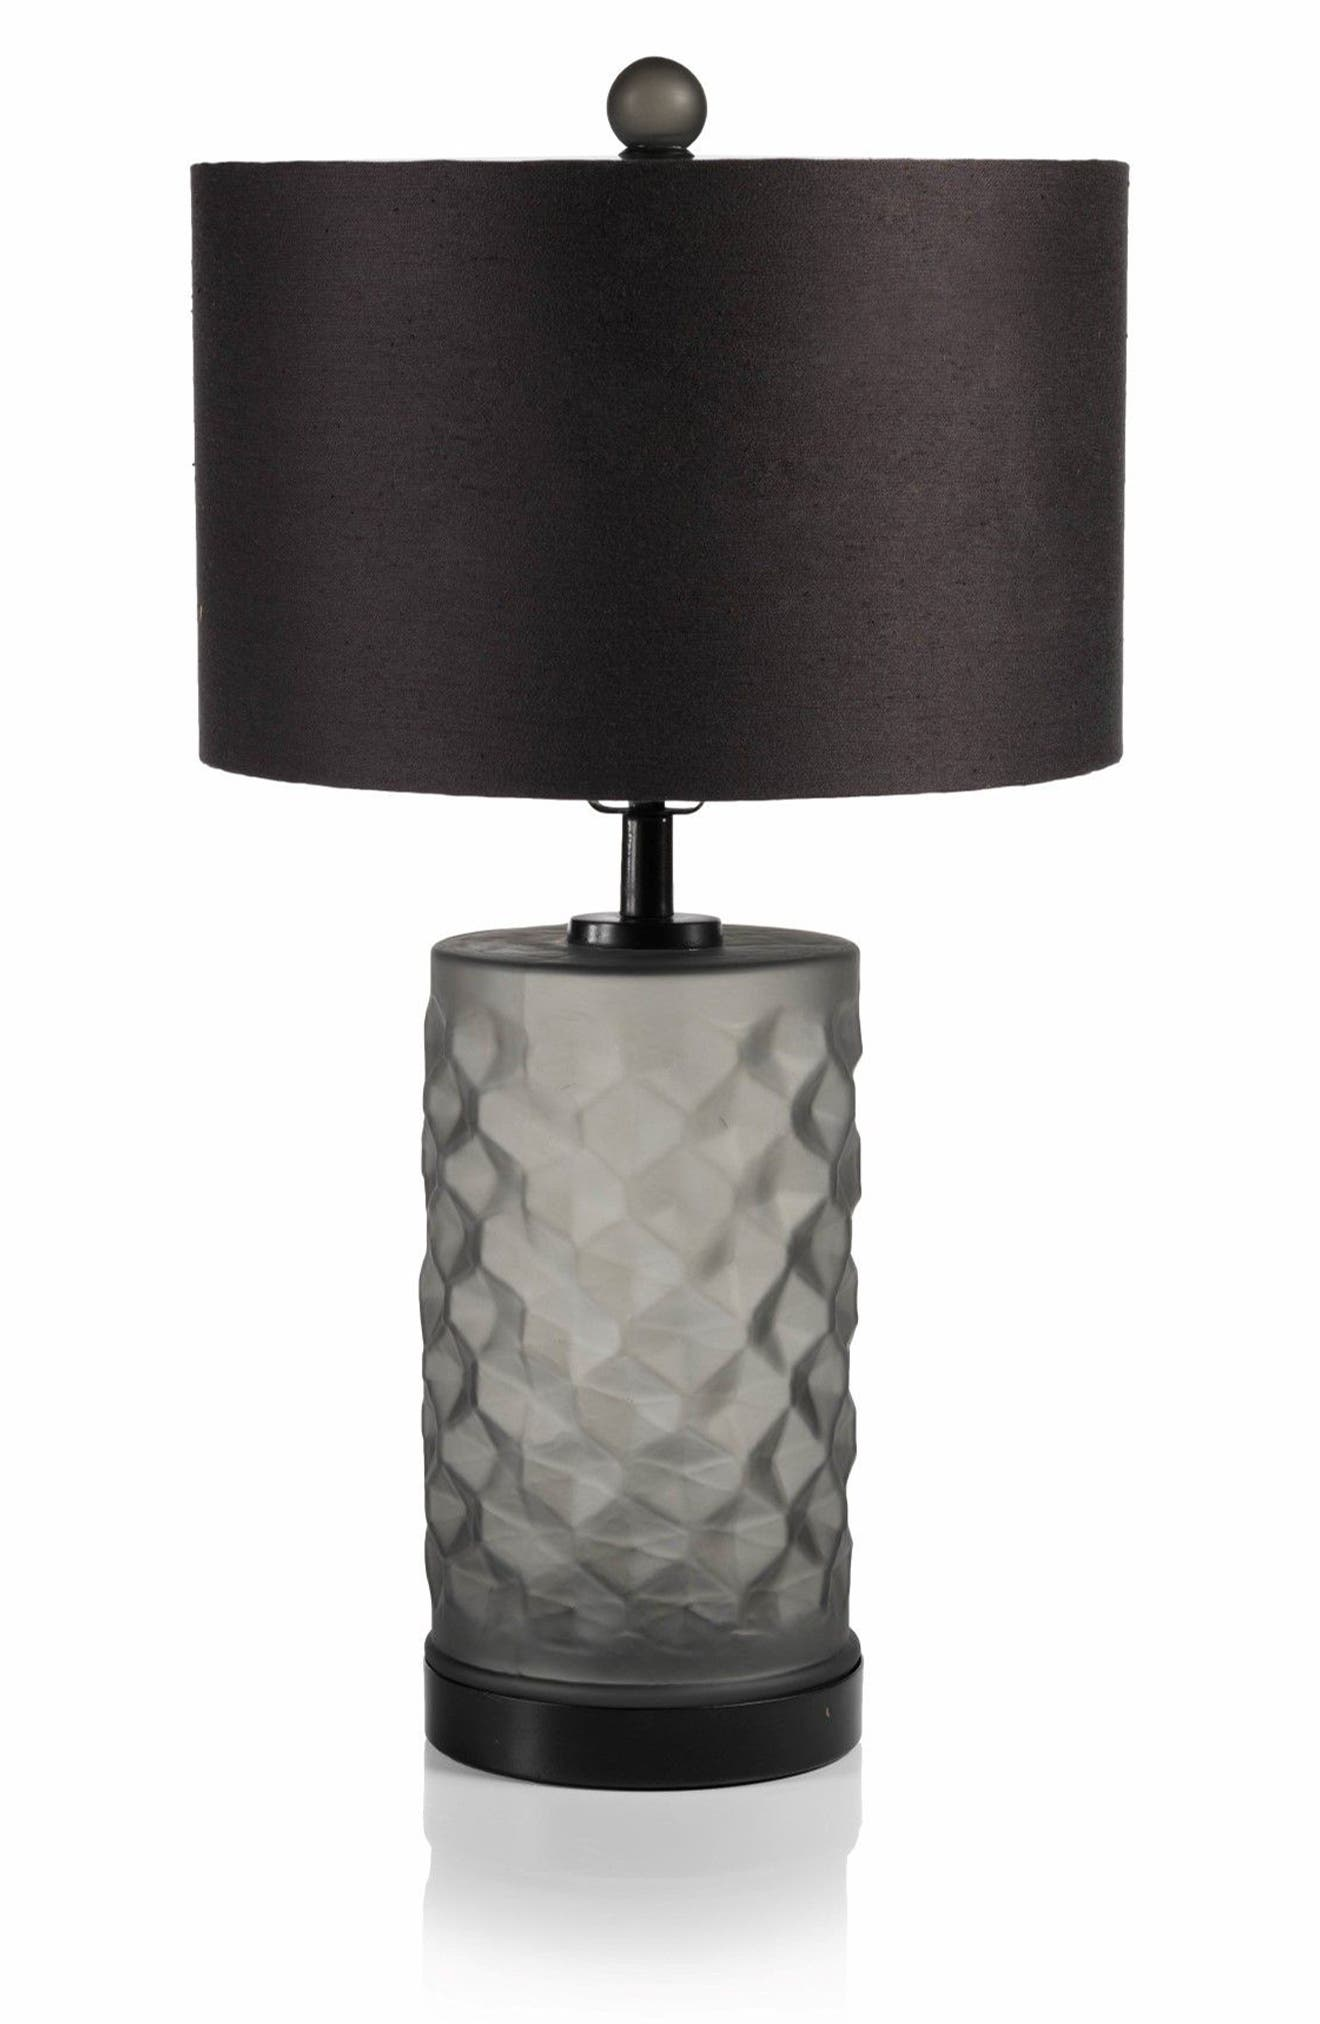 Rocco Table Lamp,                             Main thumbnail 1, color,                             001